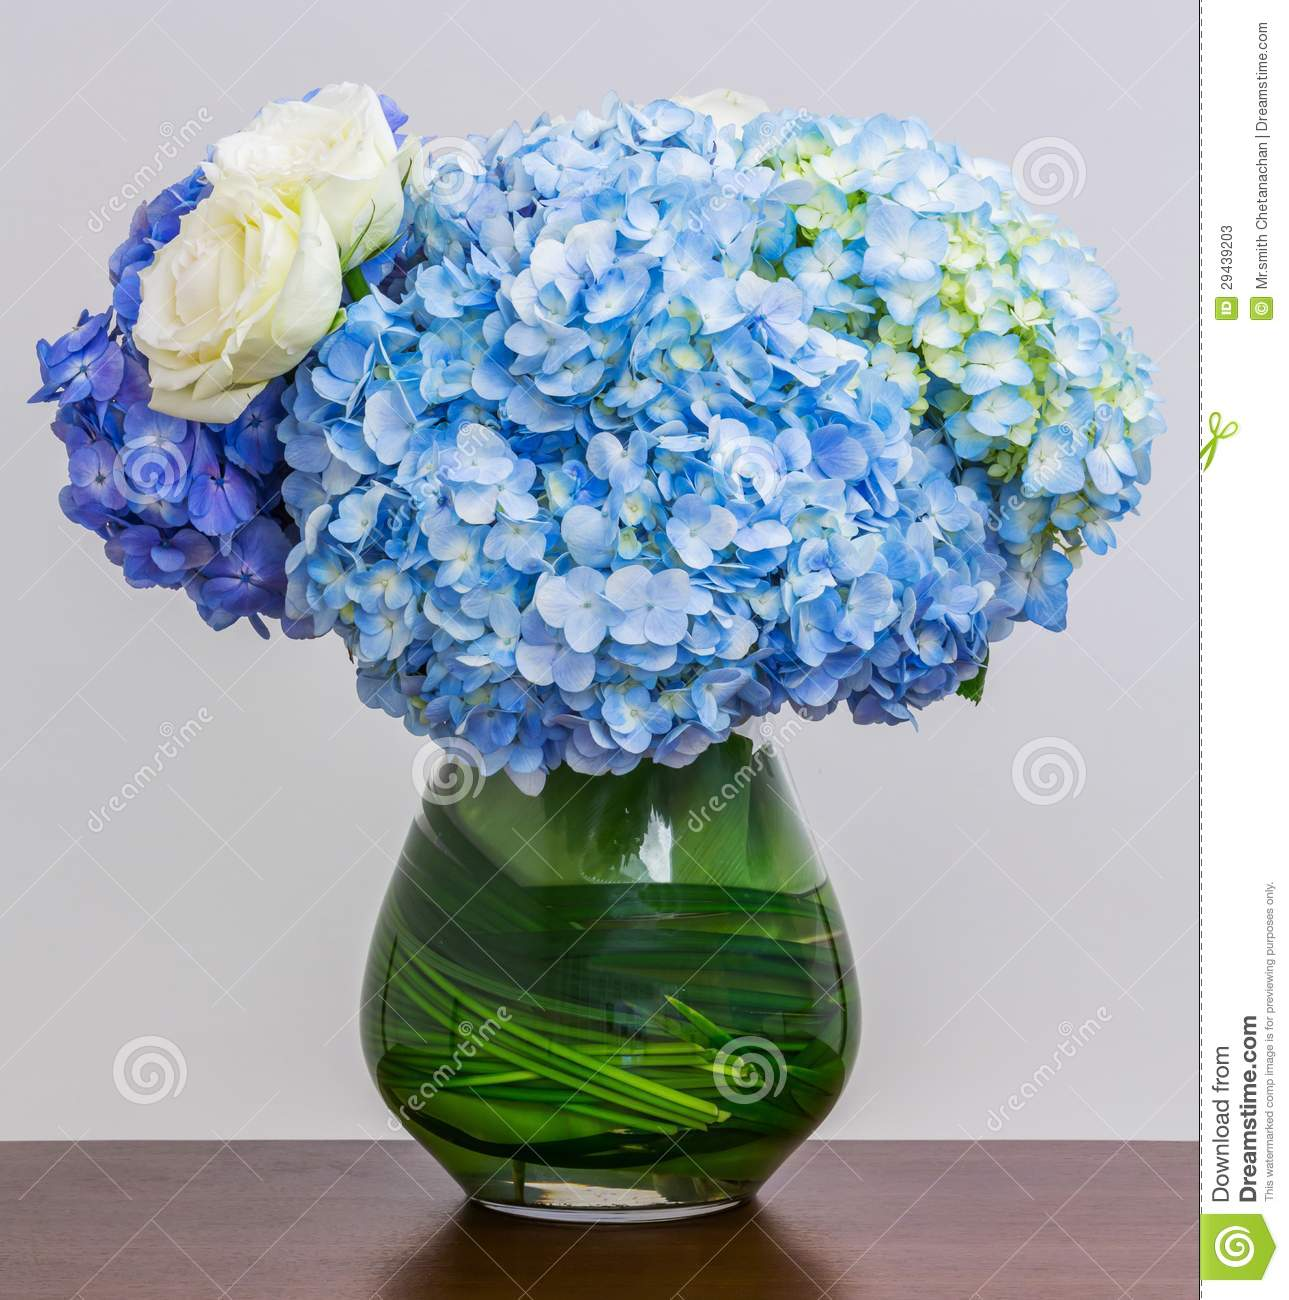 bouquet bleu d 39 hortensia photos stock image 29439203. Black Bedroom Furniture Sets. Home Design Ideas